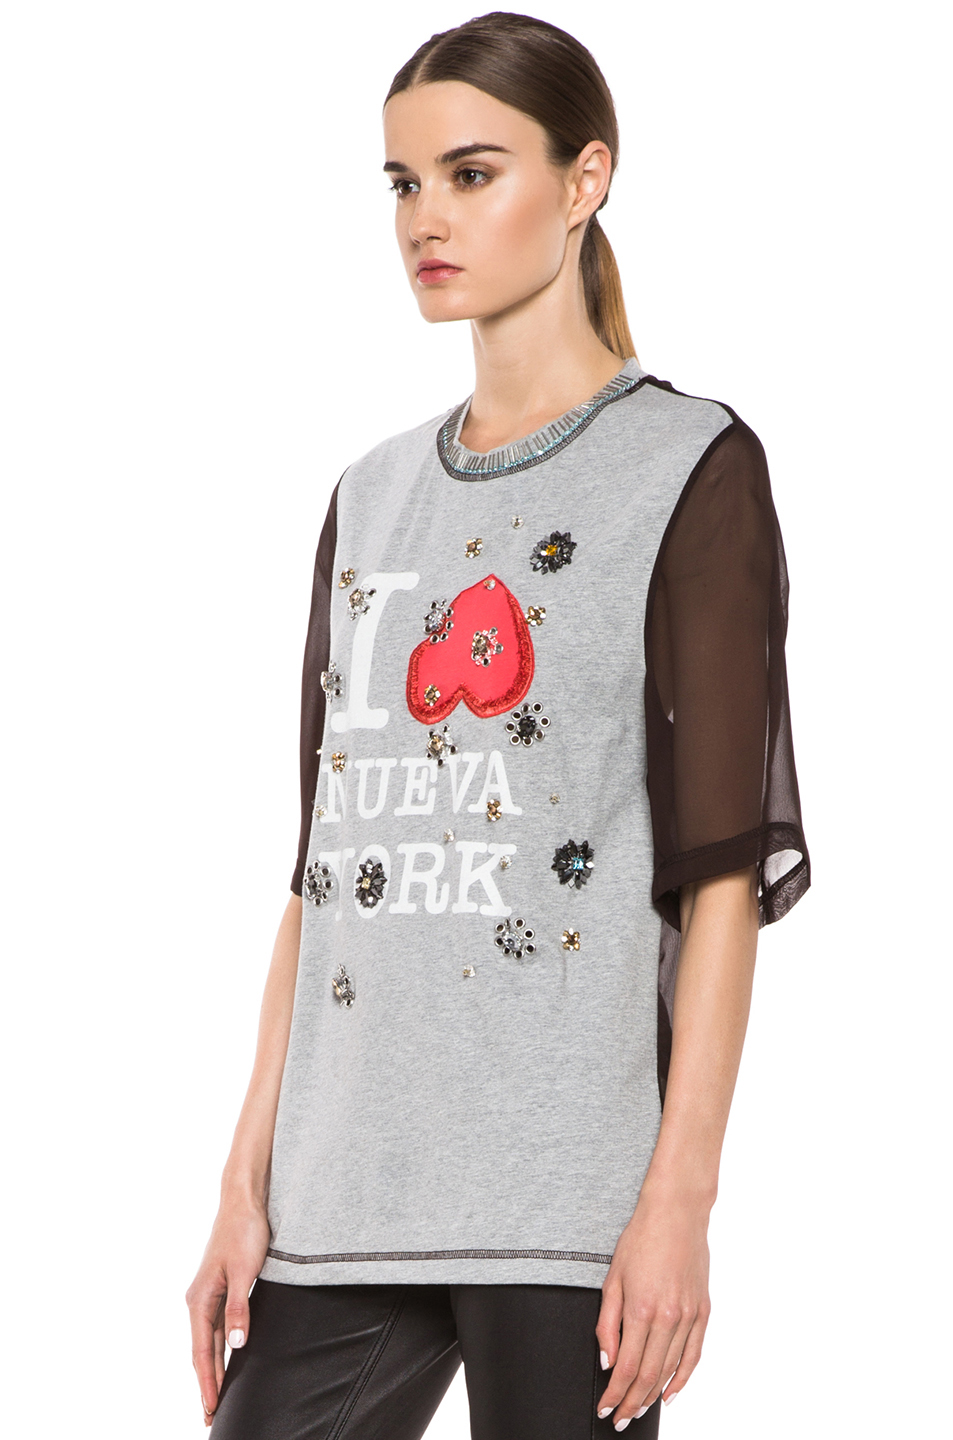 3.1 phillip lim | Nueva York Floral Eyelet Embroidery Tee in Heather Grey